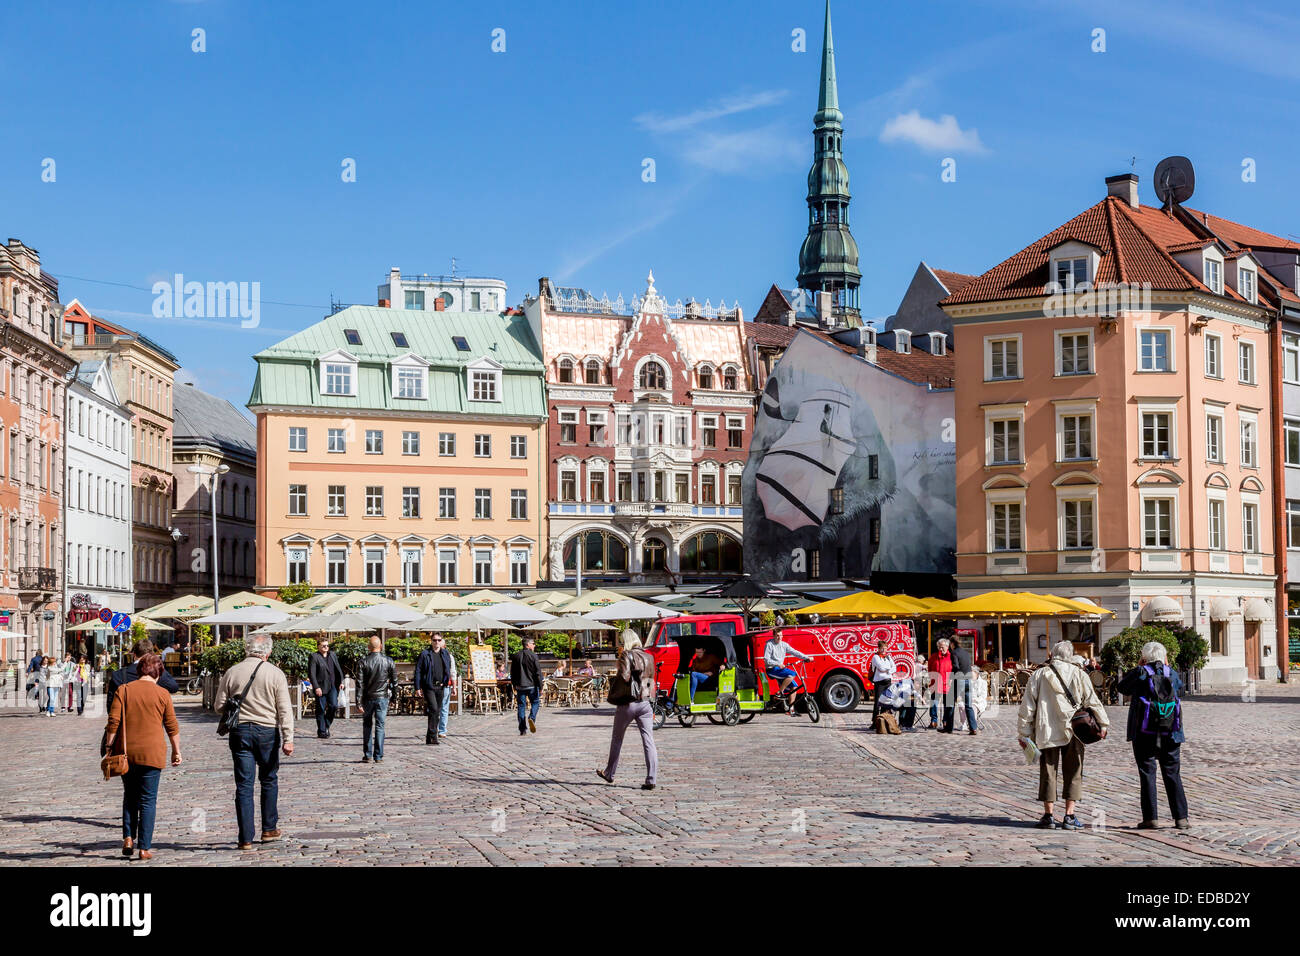 Cathedral Square in the historic centre, Riga, Latvia - Stock Image